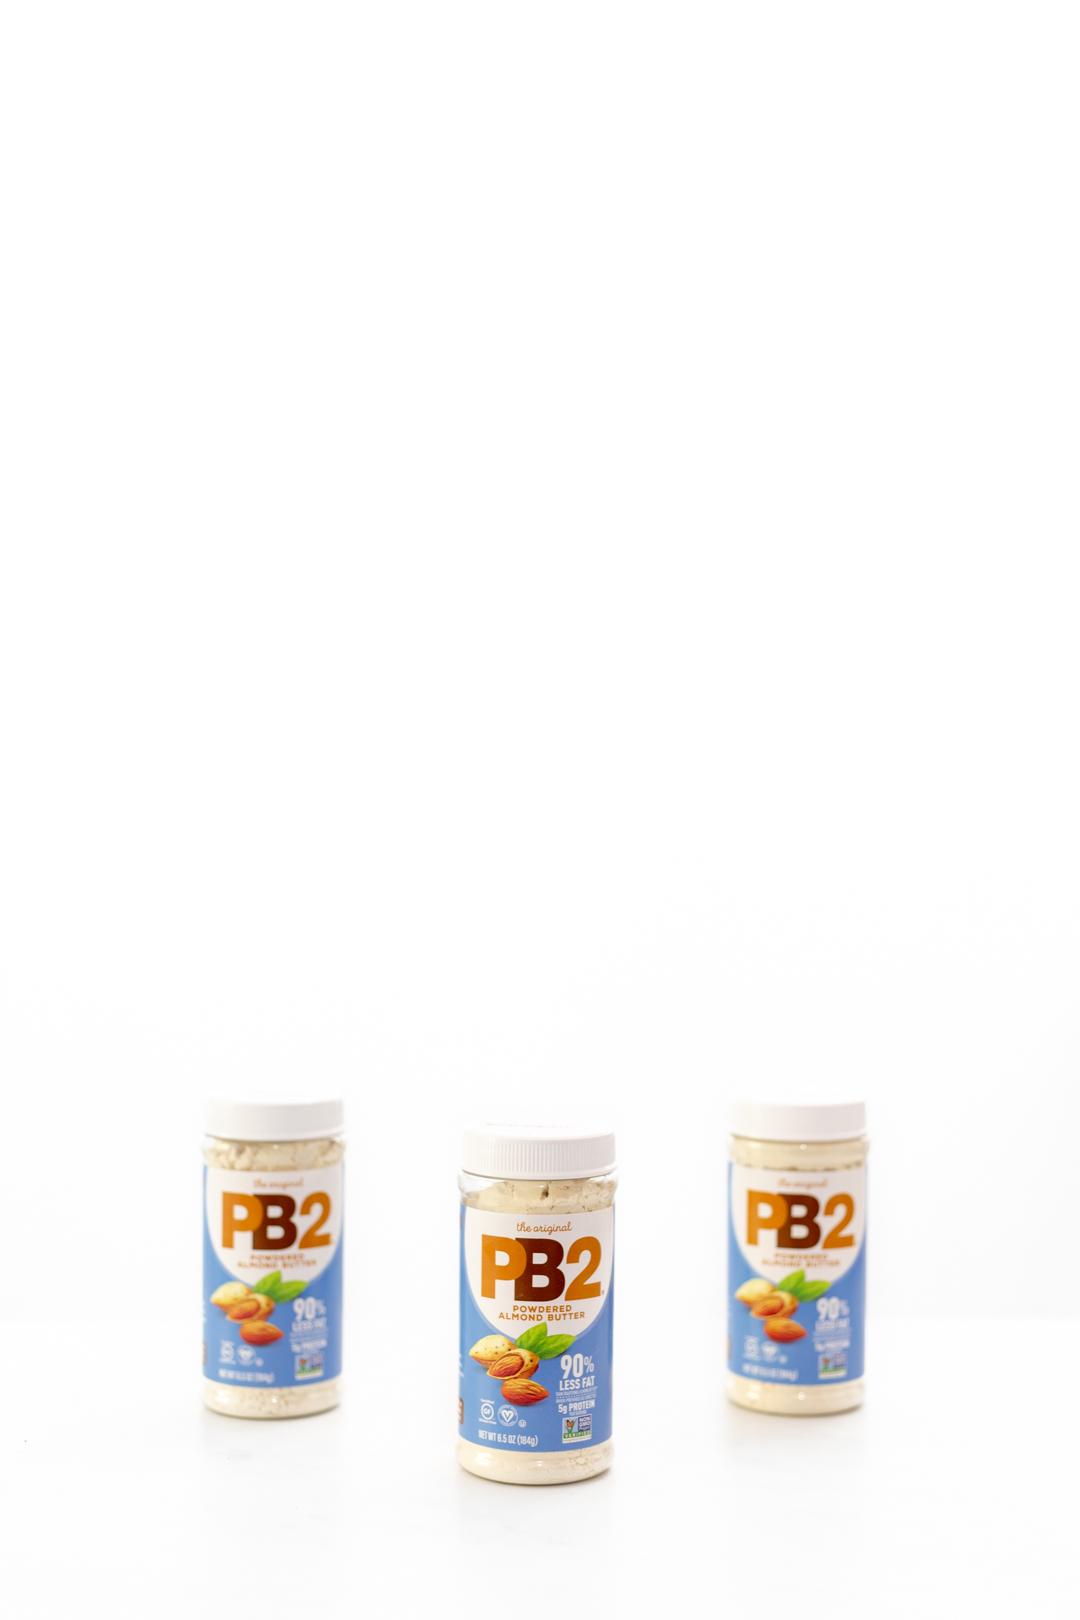 PB2 canisters